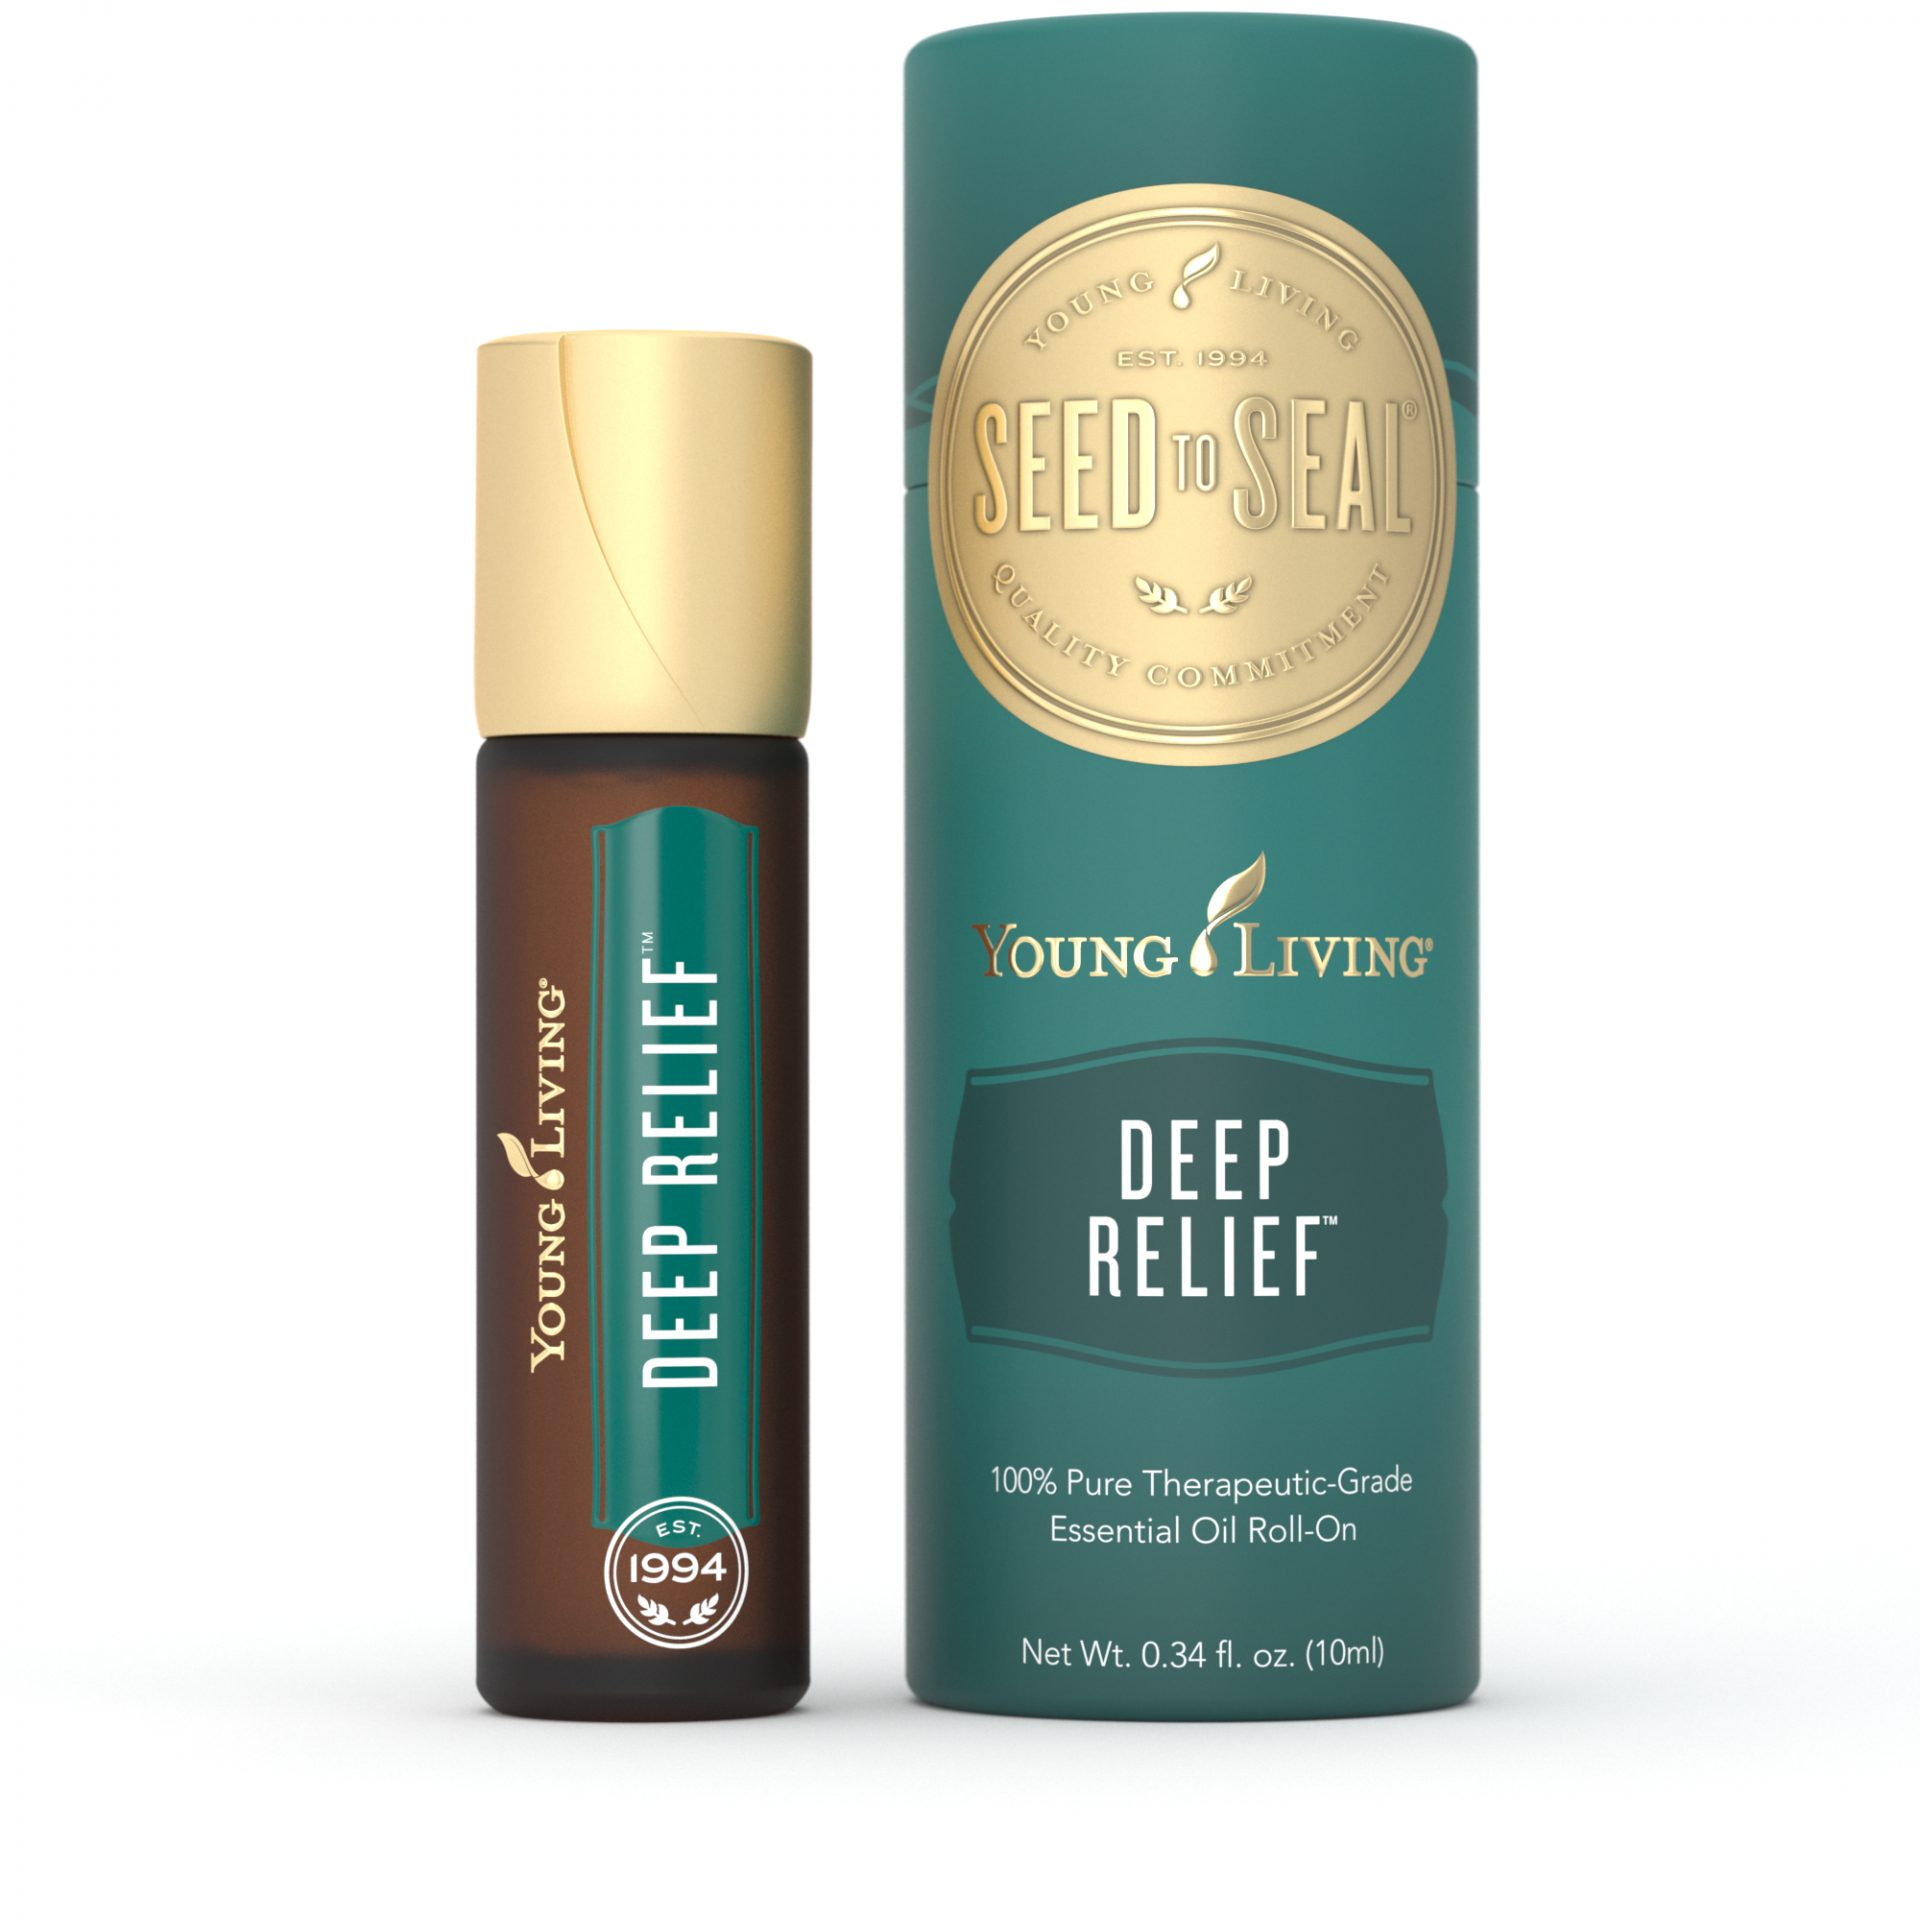 10 ml bottle of deep relief roll on with outer packaging